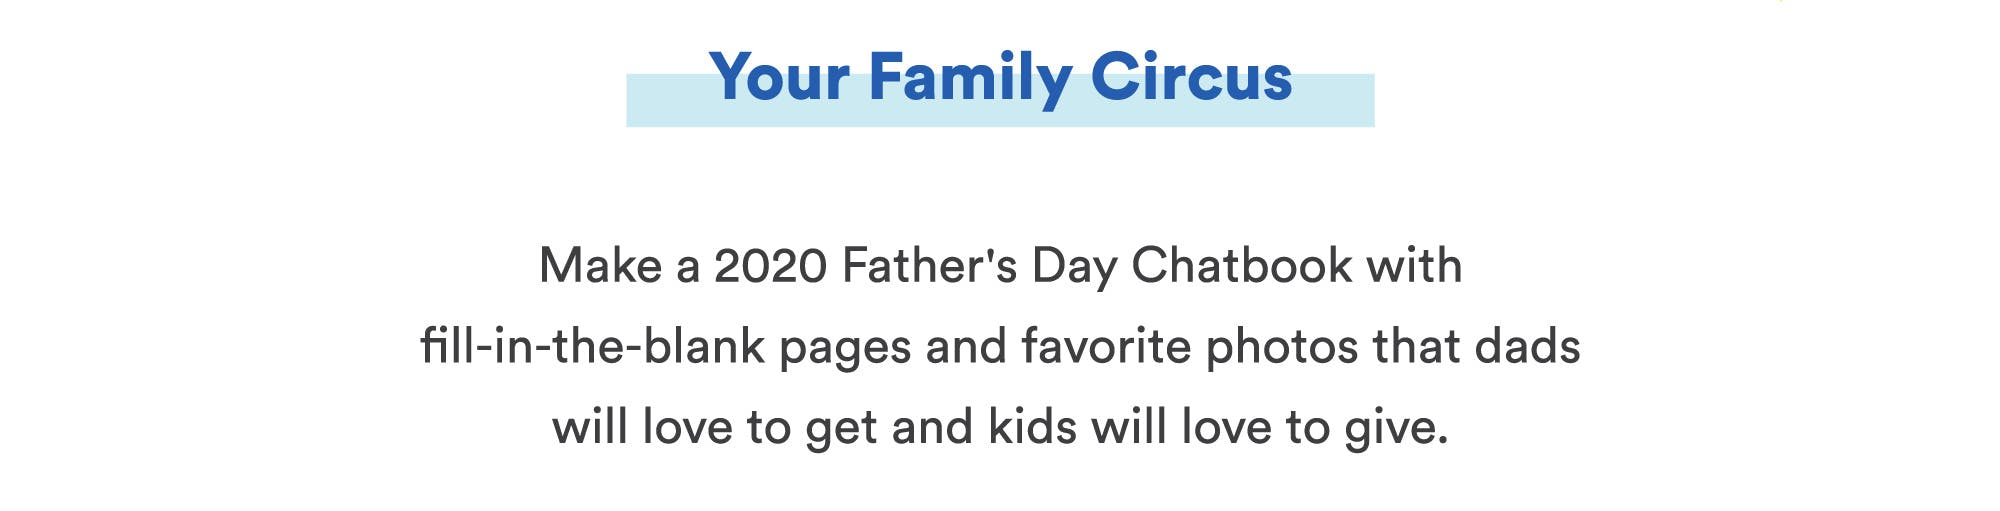 Make a 2020 Father's Day Photo Book with fill-in-the-blank pages and favorite photos